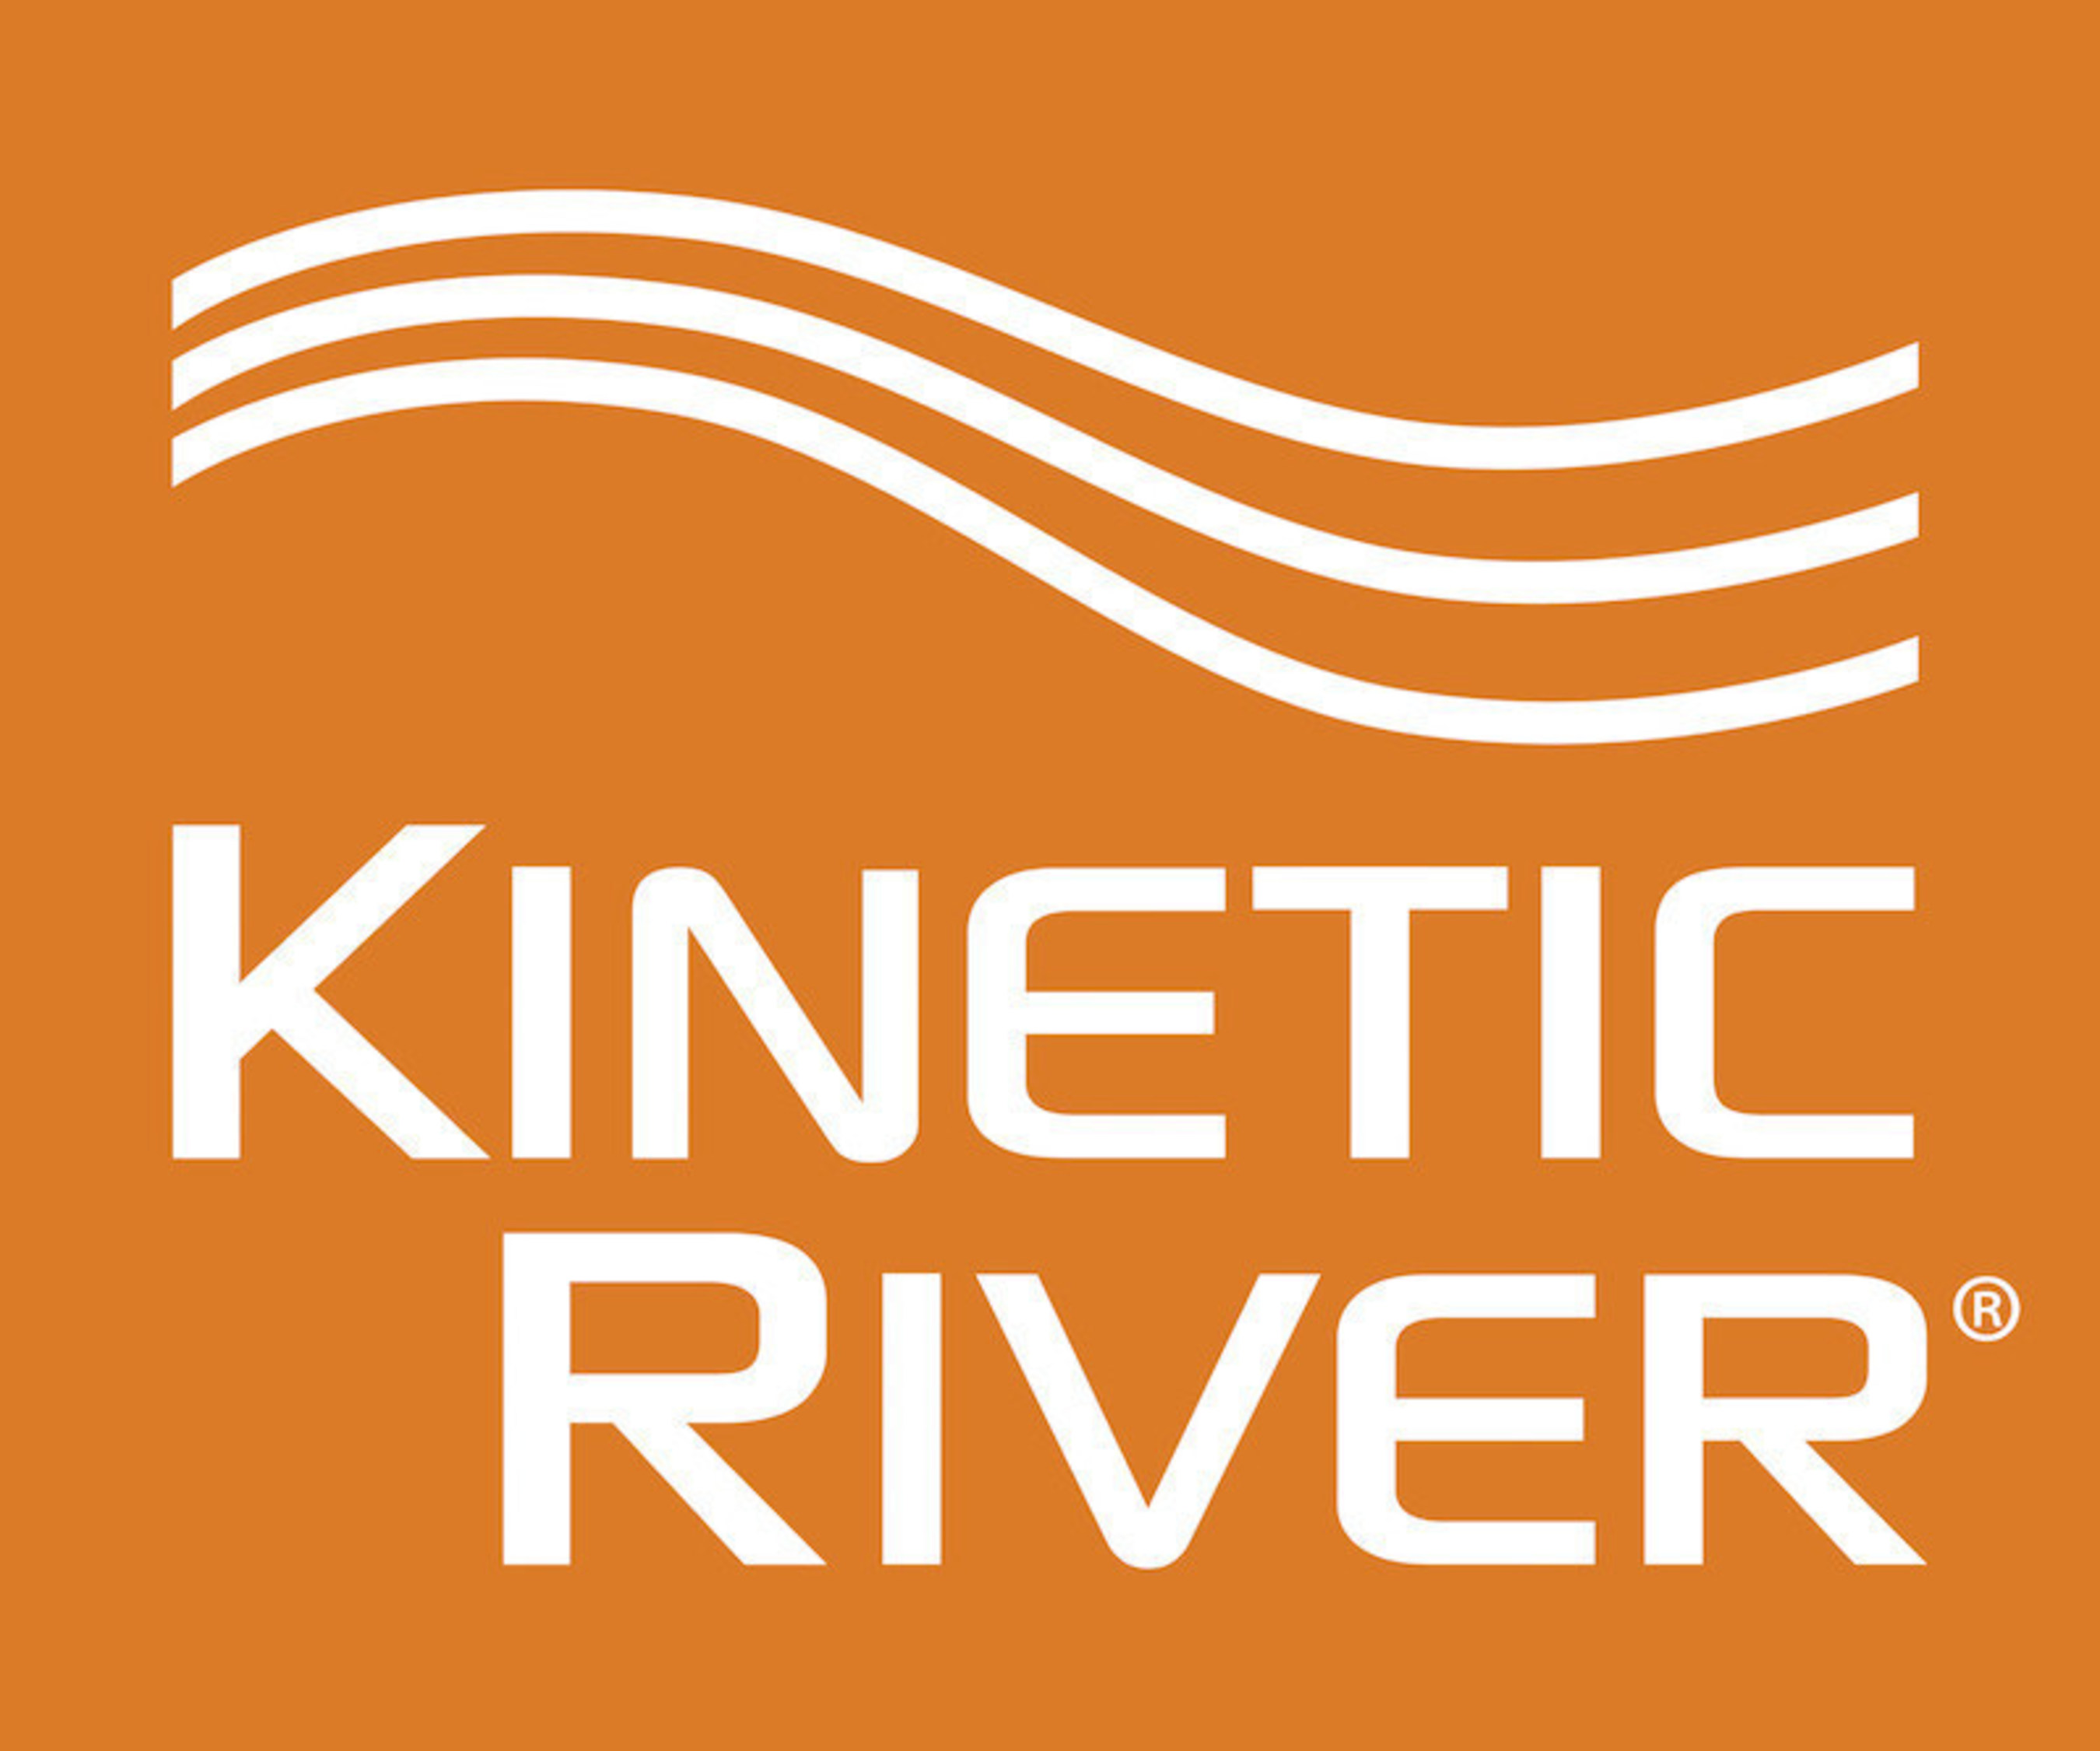 Kinetic River offers custom cell analyzers, such as the Potomac modular flow cytometer and the Danube fluorescence lifetime flow cytometer. Consulting services available from Kinetic River include design reviews, technical due diligence, expert witnessing, design and prototyping.